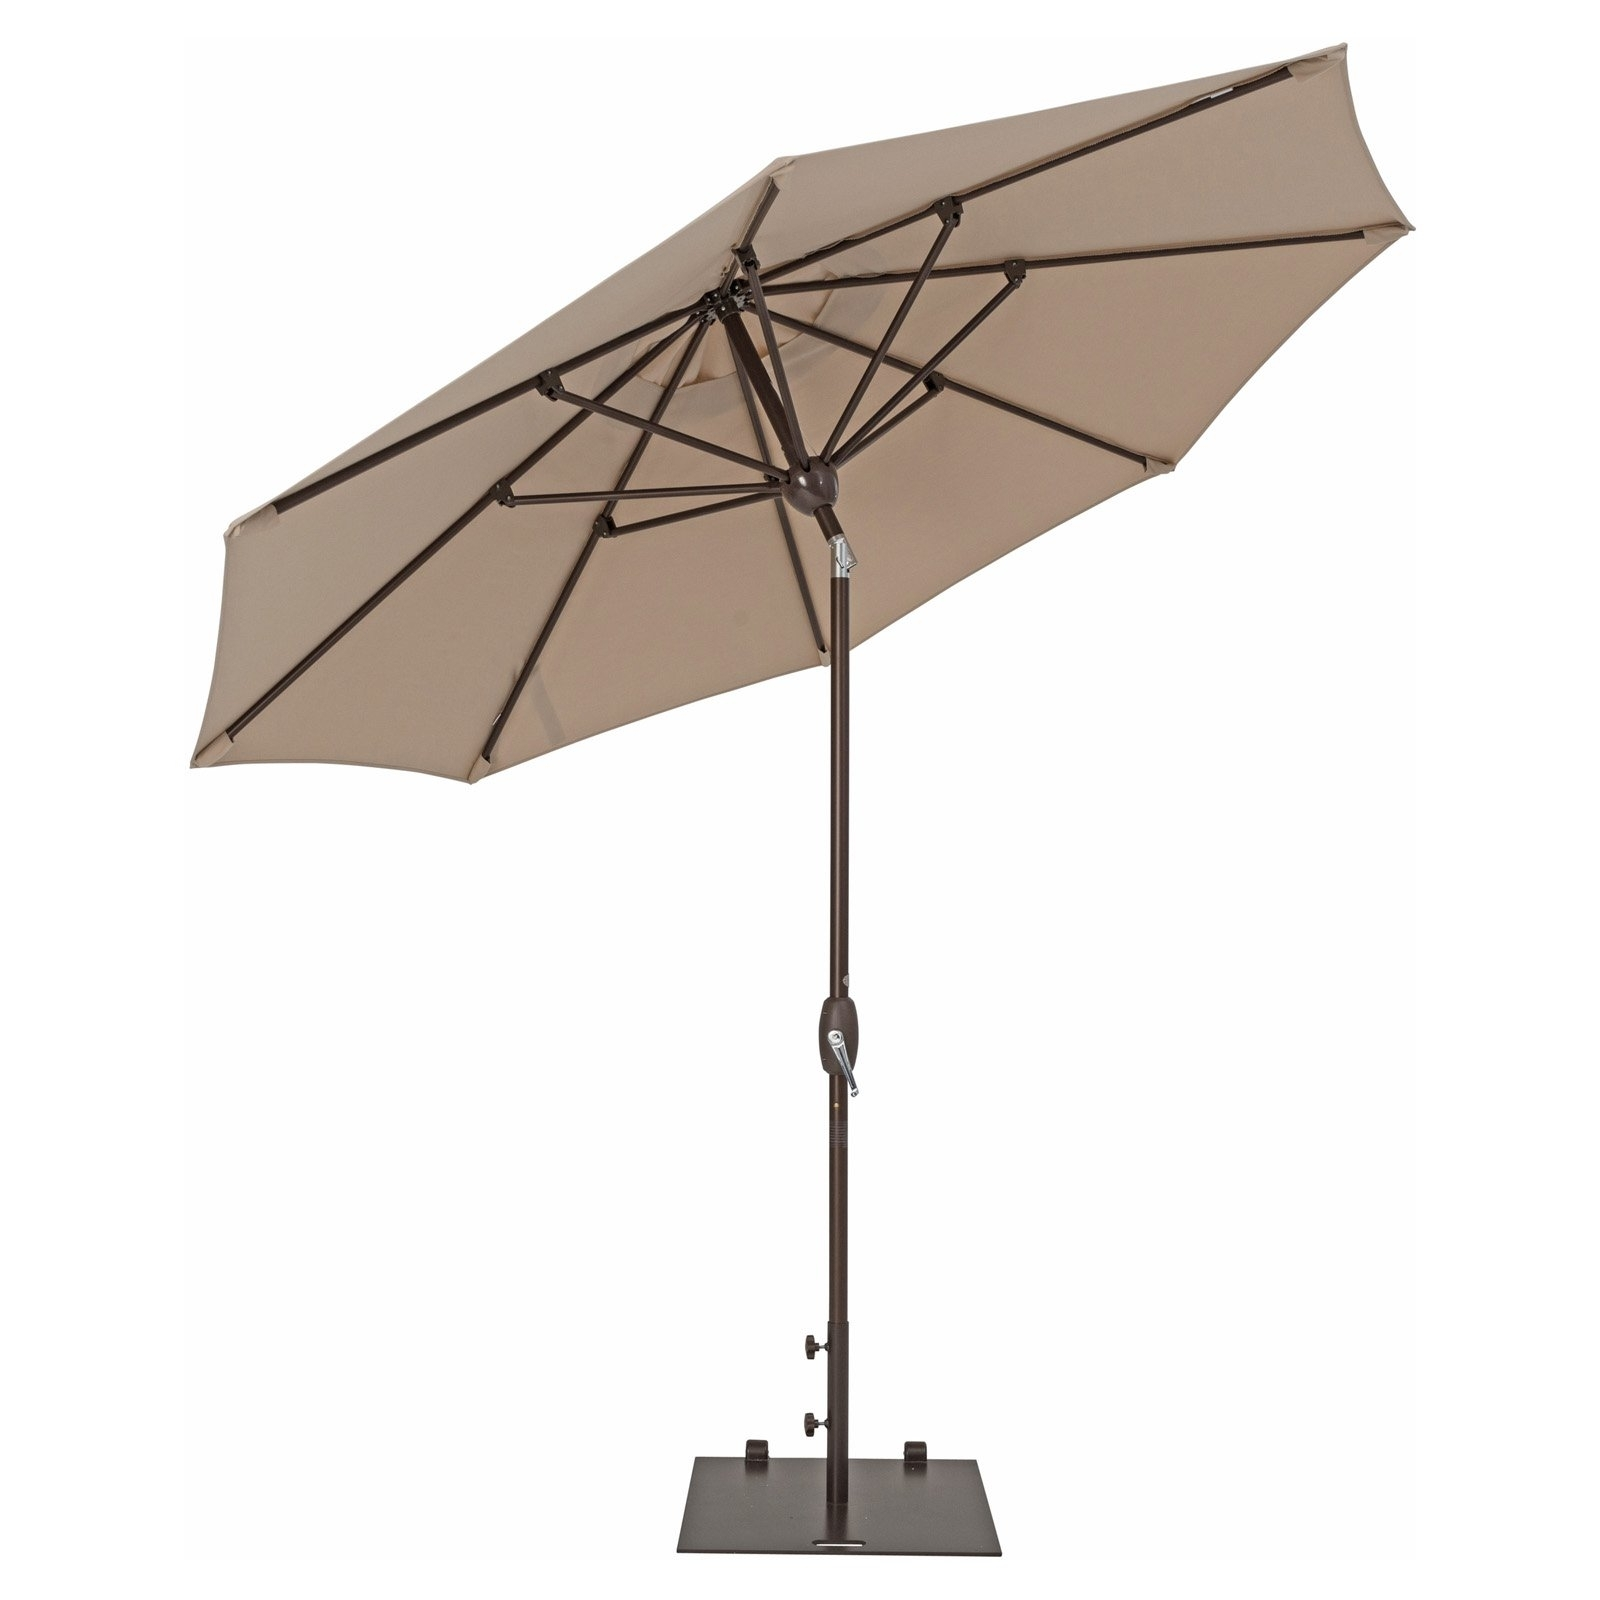 Trueshade Plus 9' Market Umbrella With Sunbrella Fabric, Auto Tilt Inside Trendy Patio Umbrellas With Sunbrella Fabric (Gallery 10 of 20)